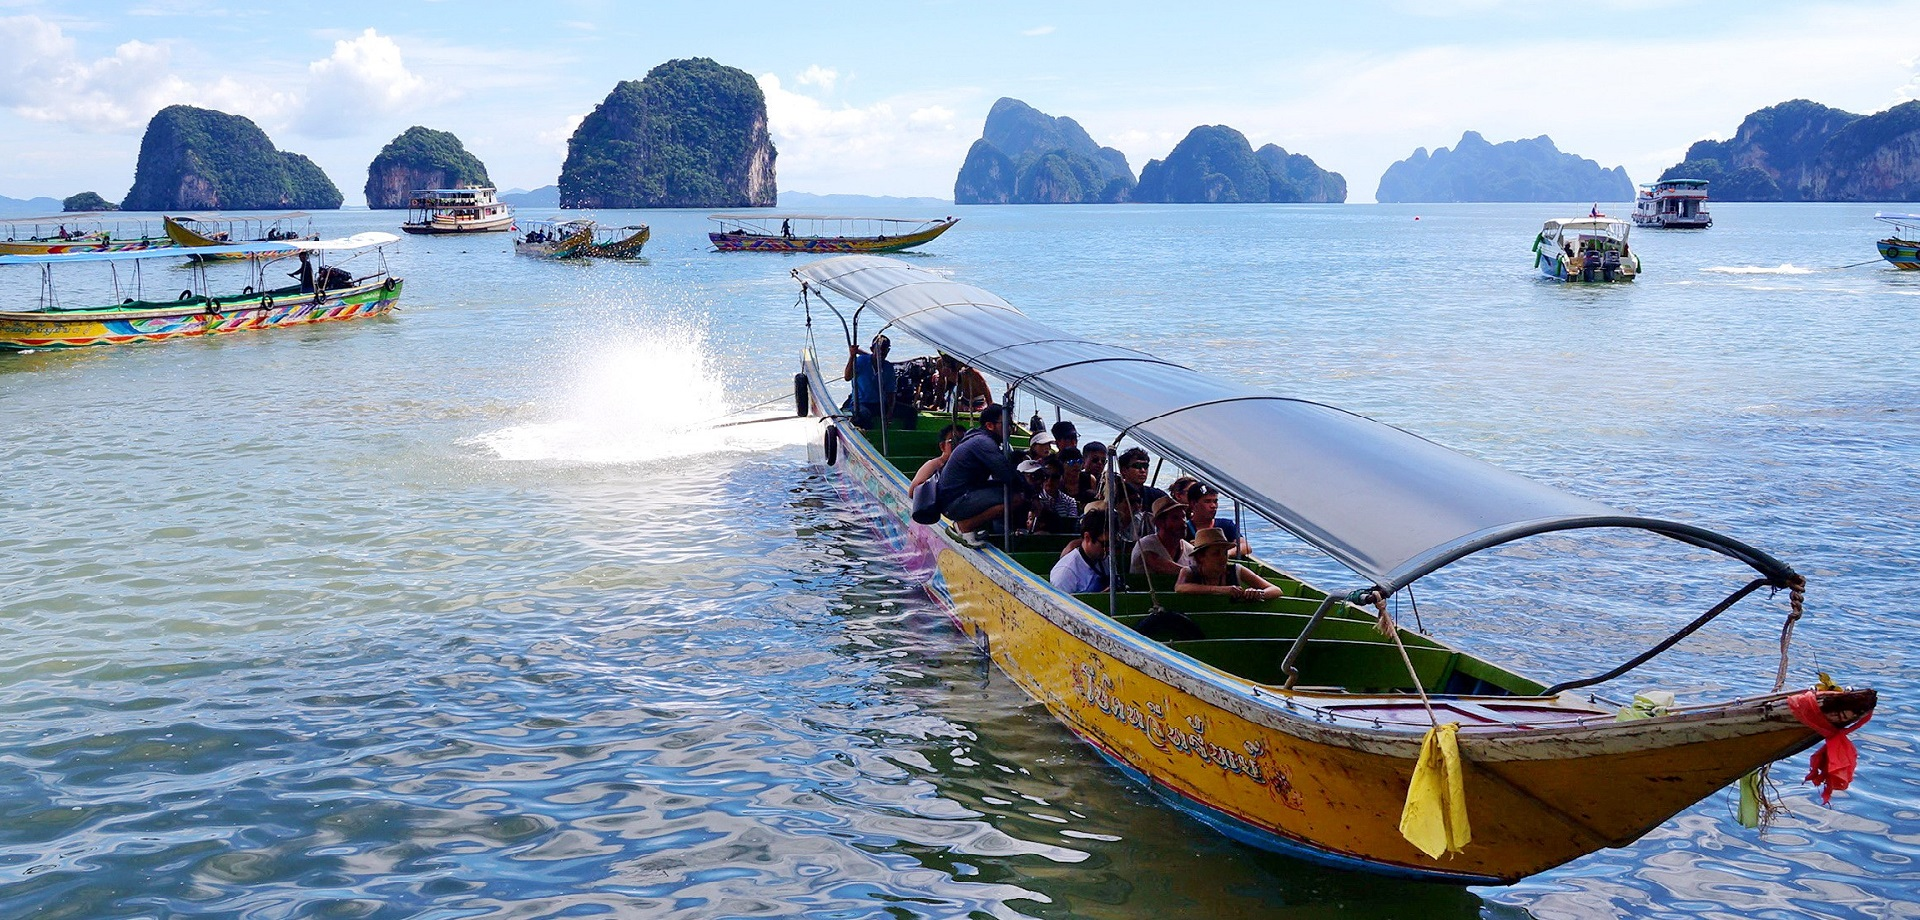 James Bond Islands Tours